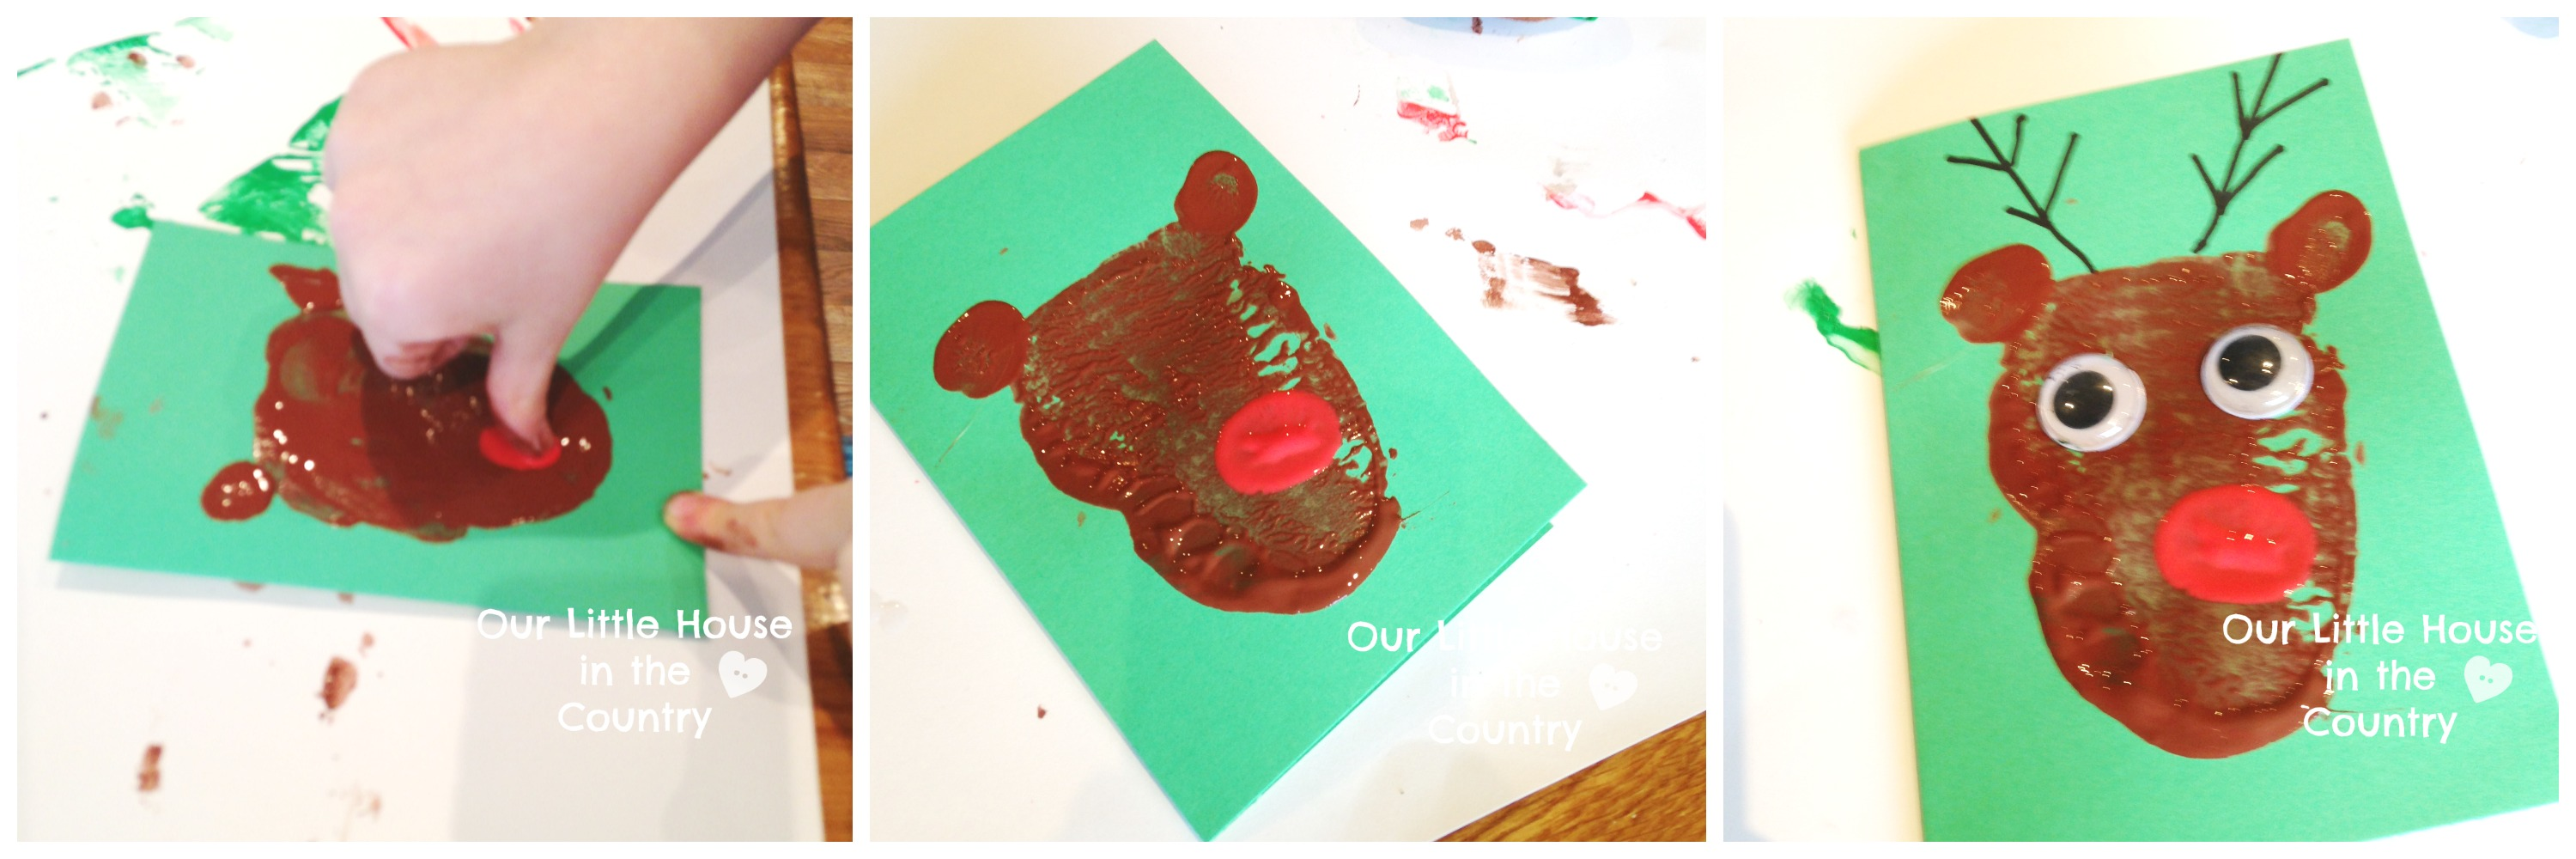 Potato Print Reindeer Christmas Cards | Our Little House in the Country